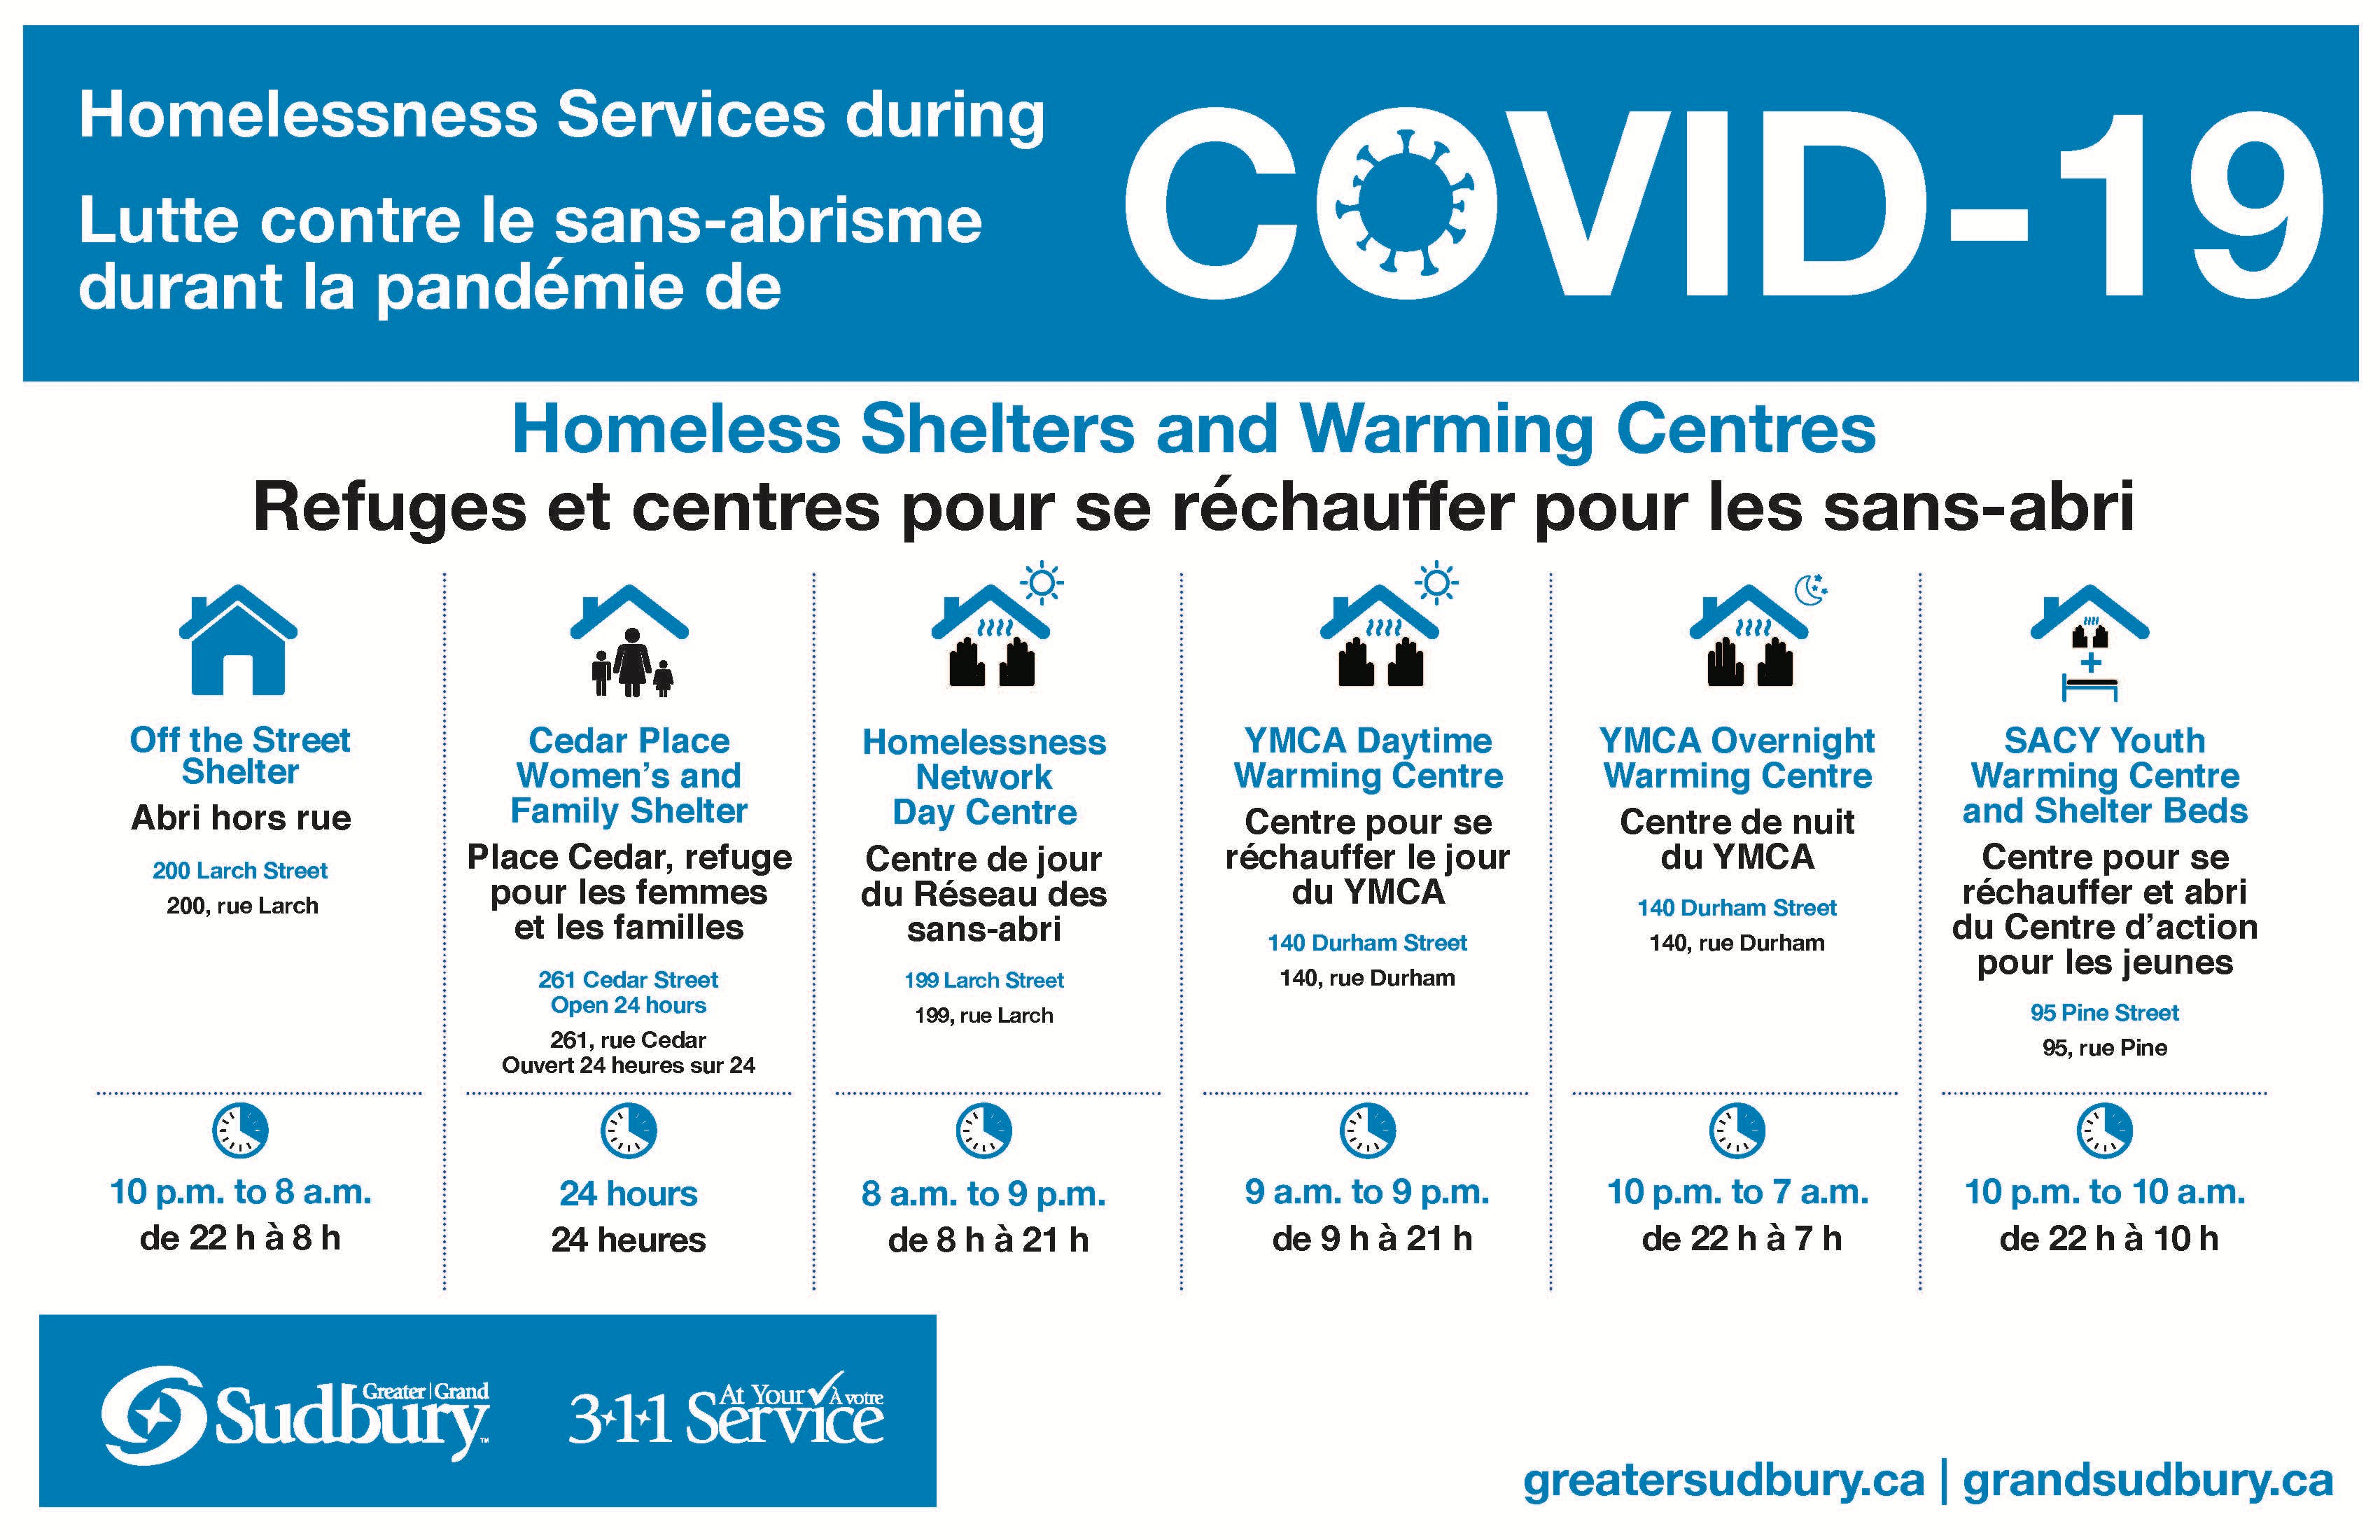 Shelters and Warming Centres